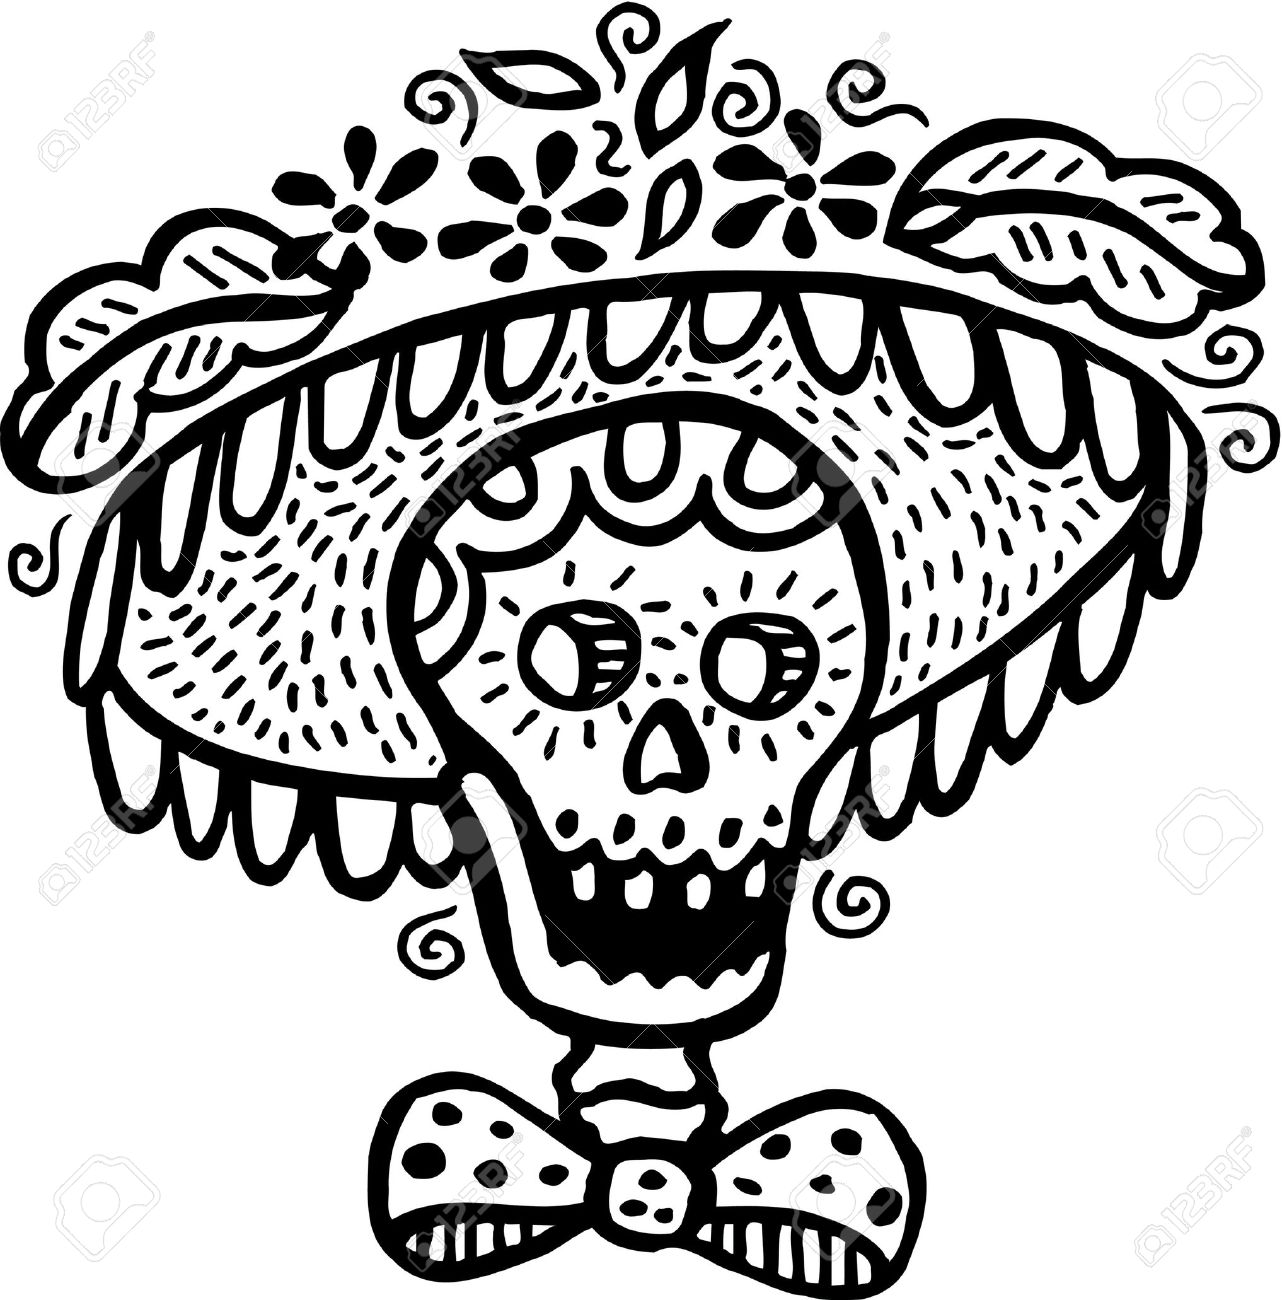 A black and white picture of a skull wearing a hat Stock Photo - 14853425